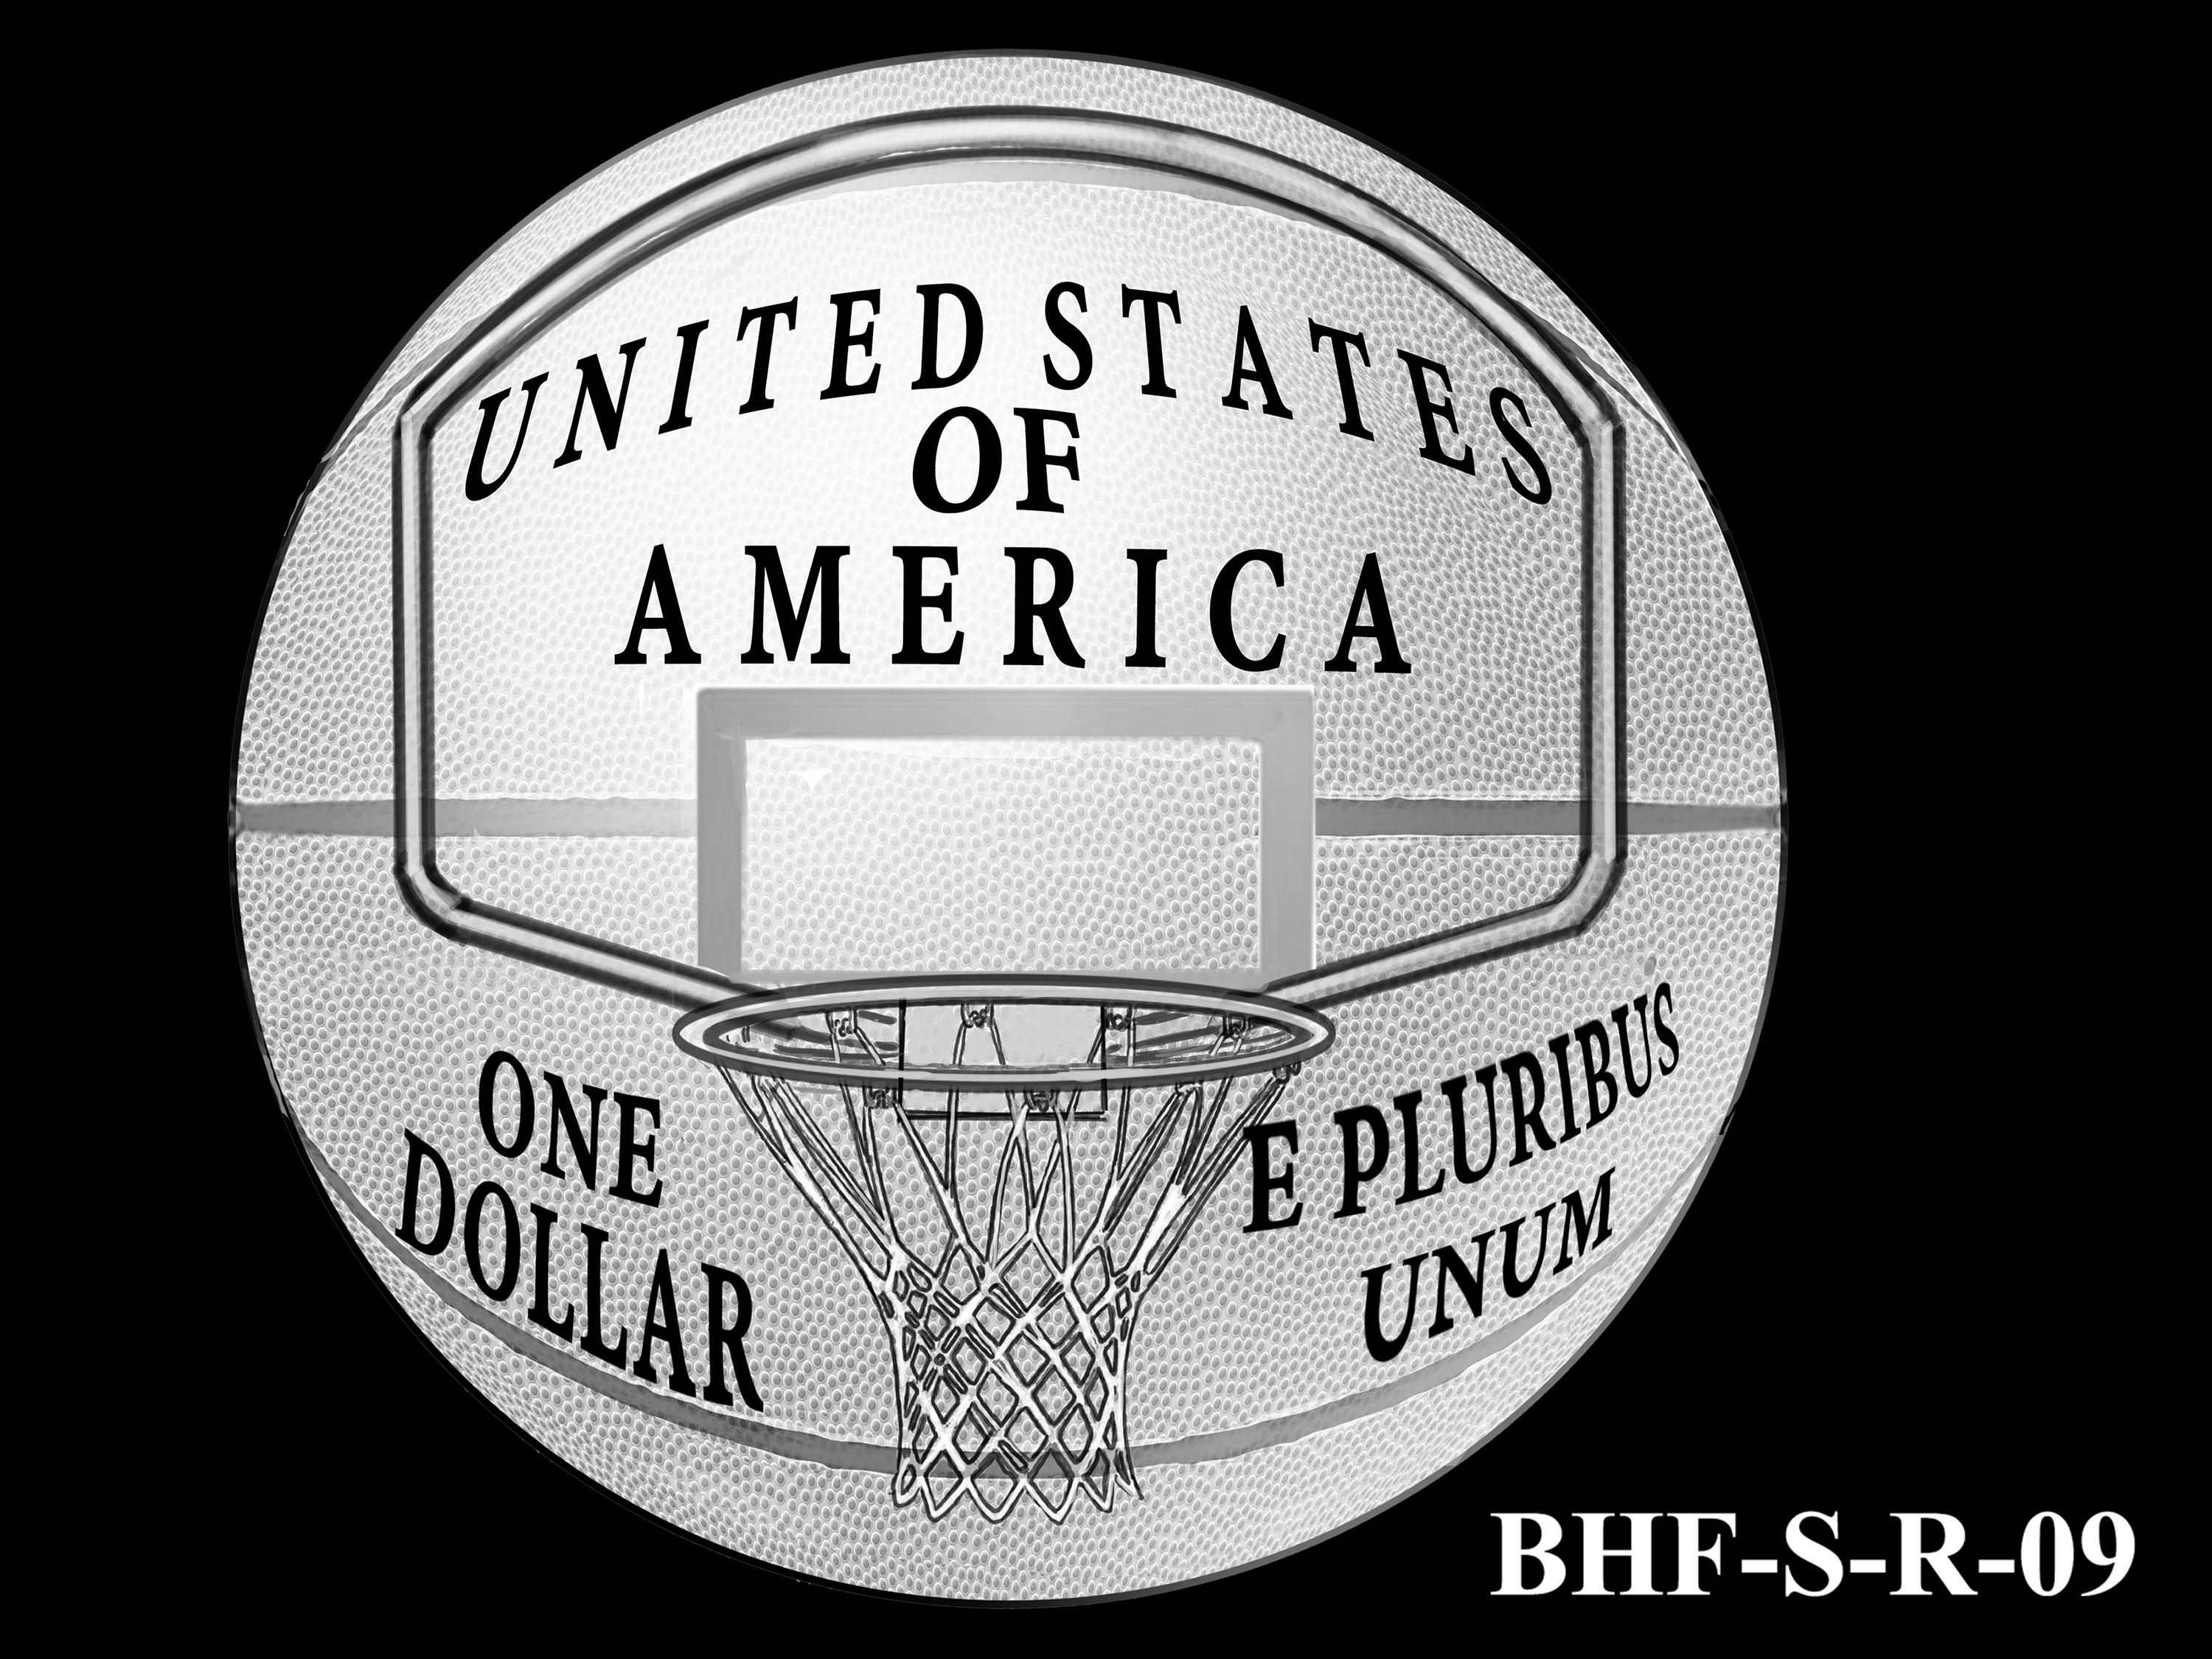 BHF-S-R-09 -- 2020 Basketball Hall of Fame Commemorative Coin Program - Silver Reverse